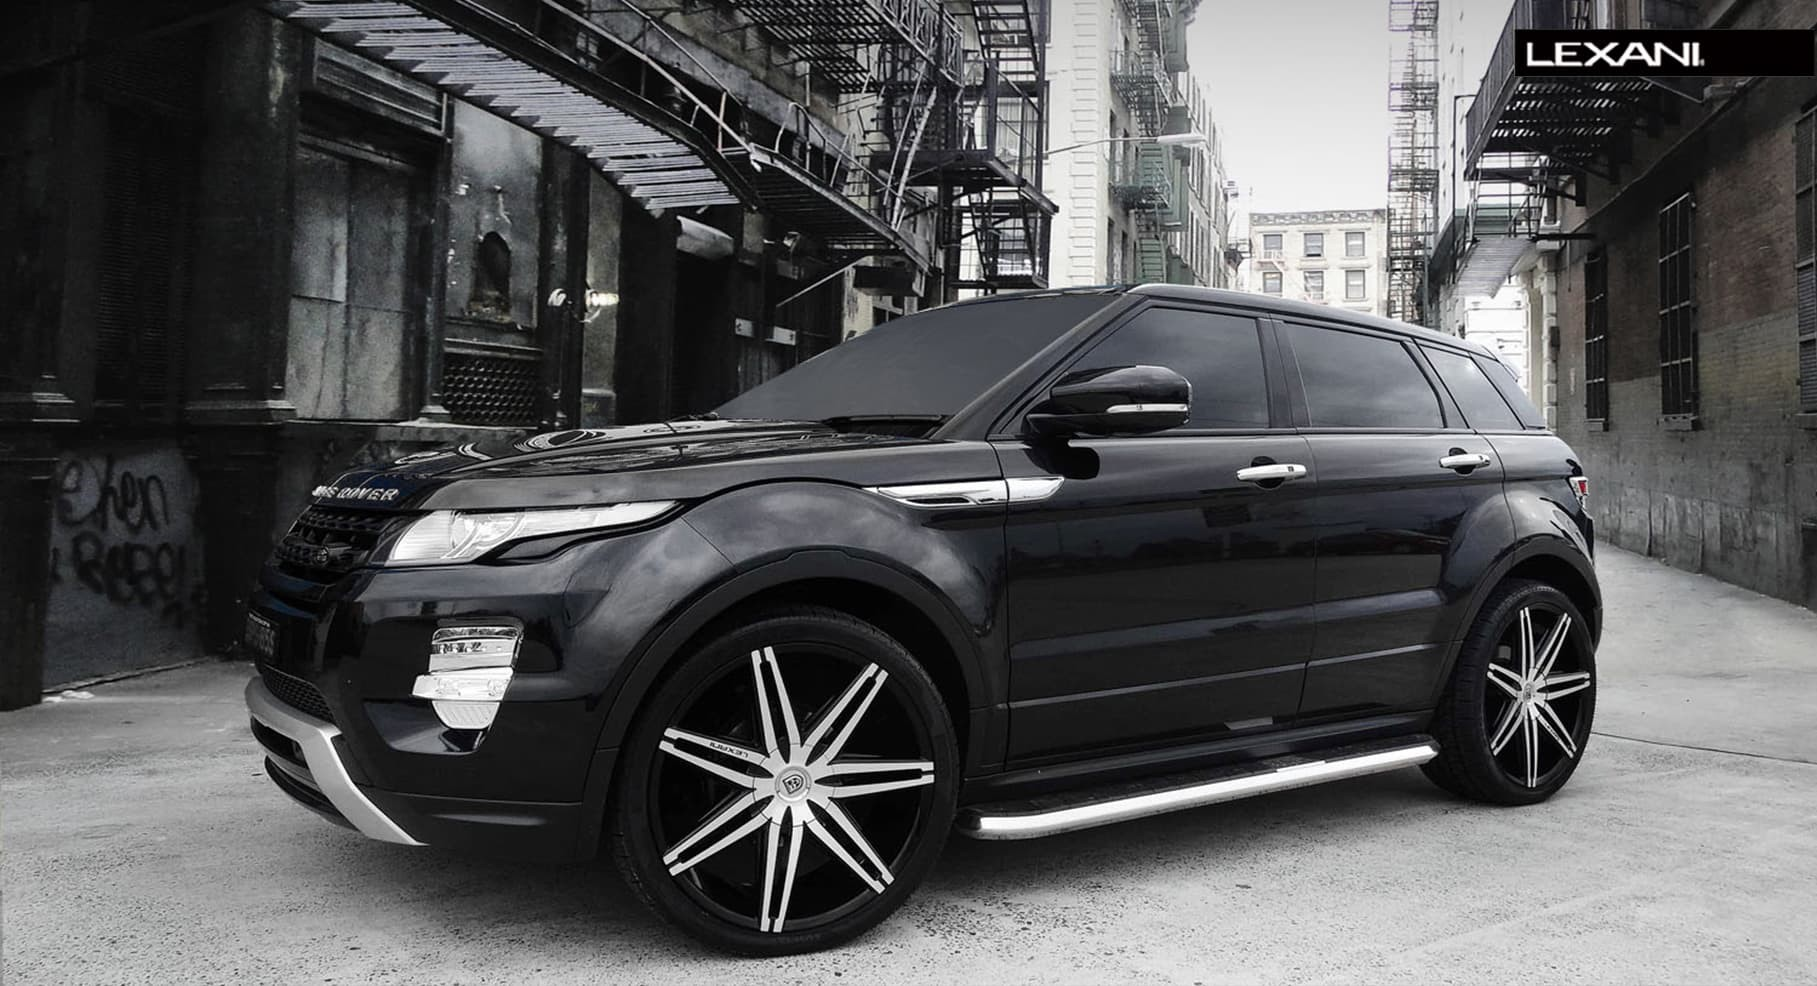 2013 Range Rover Evoque with brushed/black Johnson II rims.